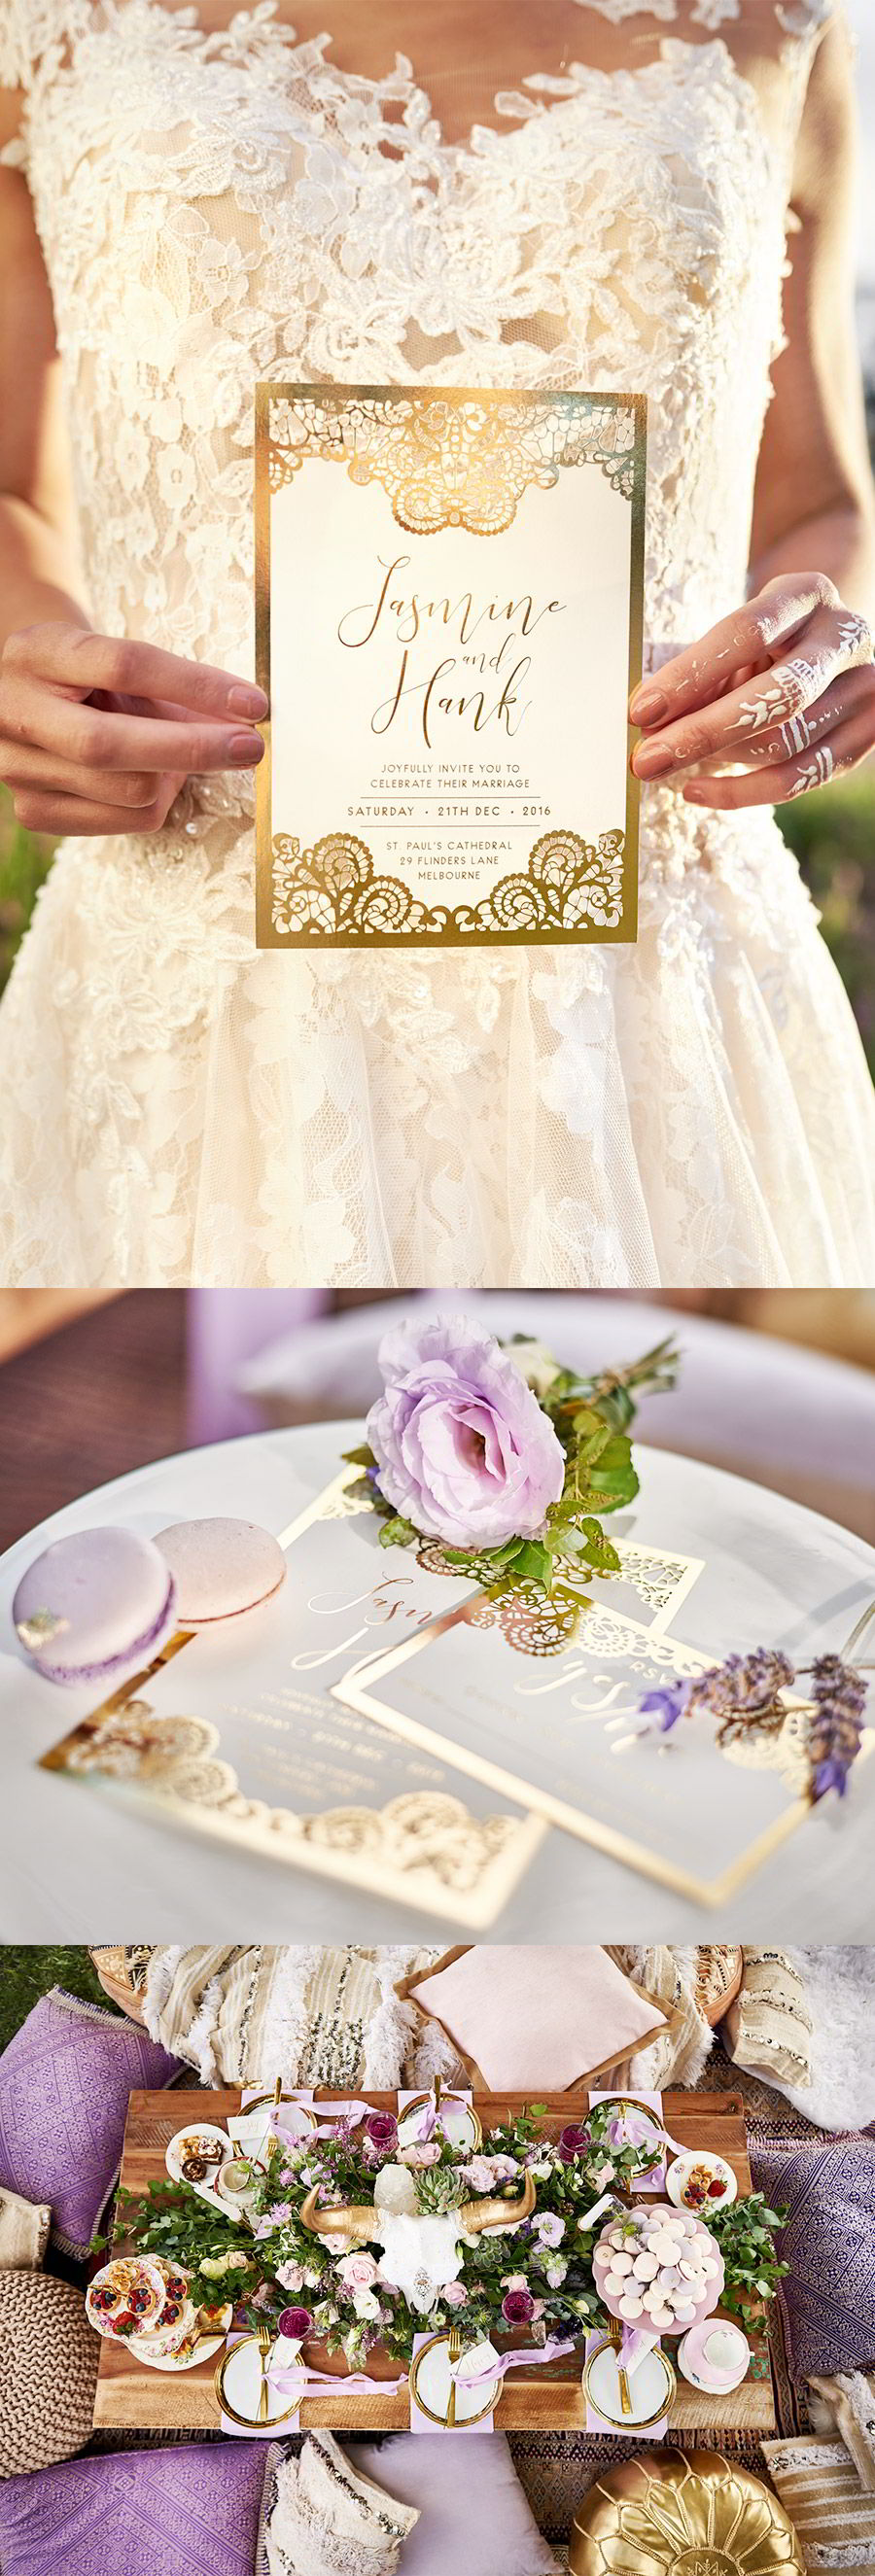 lavender field wedding photo shoot adorn invitations purple gold boho luxe inspiration romantic bohemian weddings